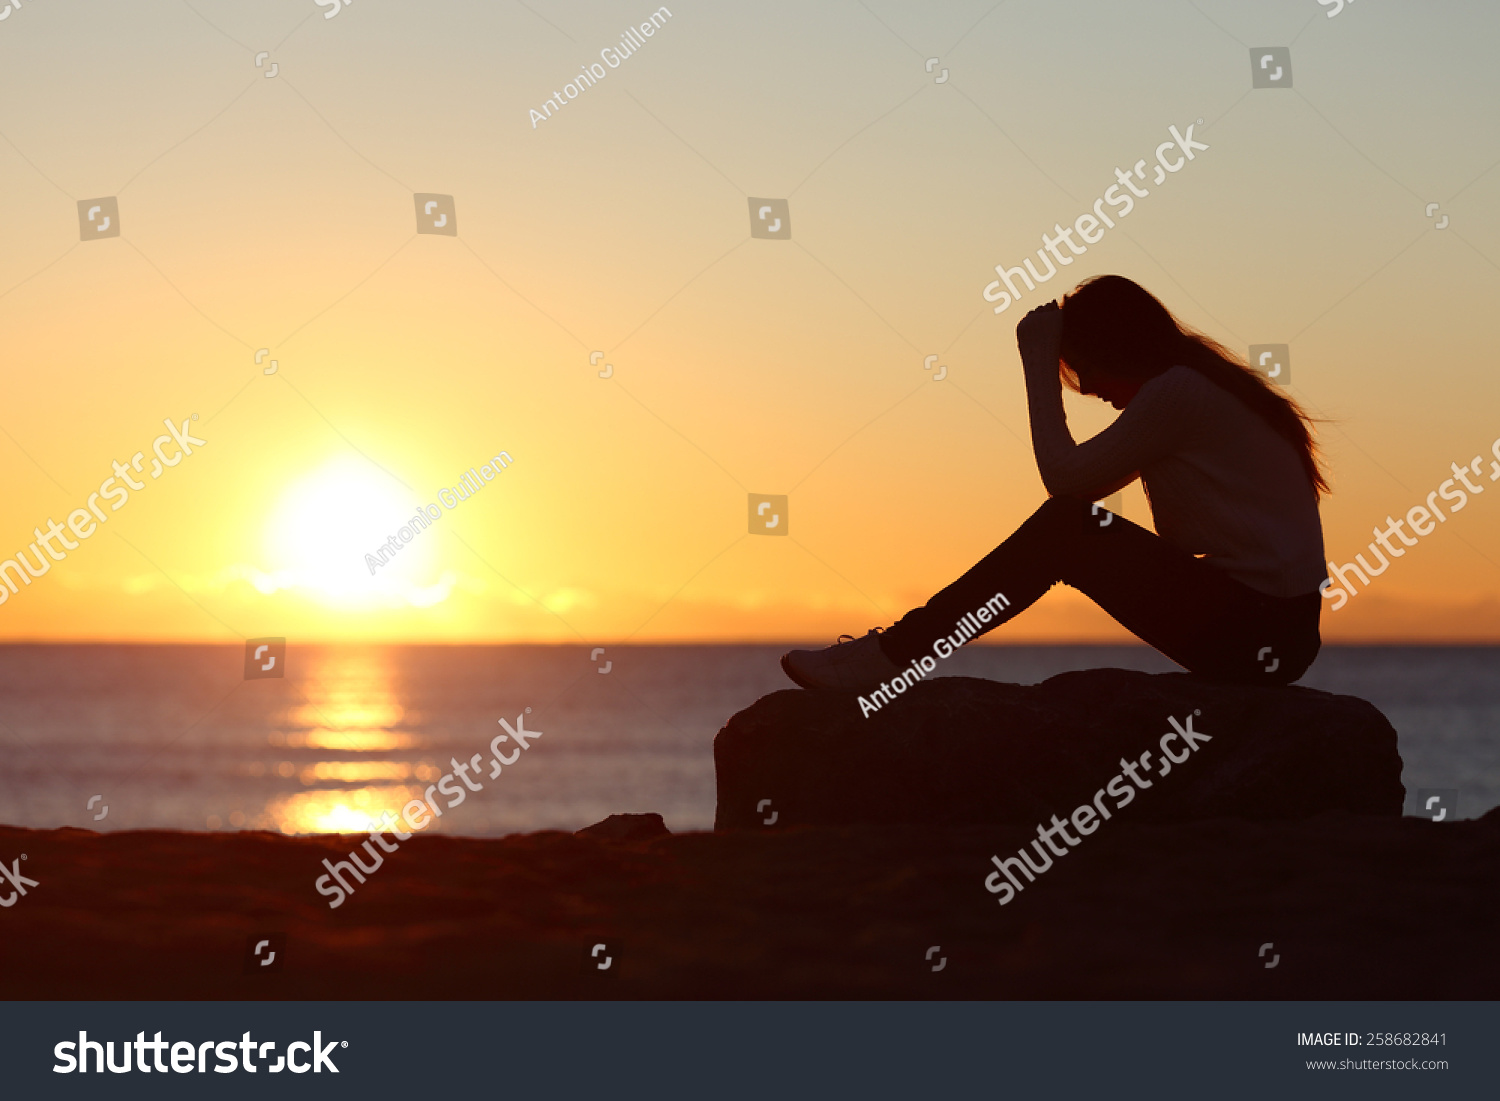 Sad woman silhouette worried on the beach at sunset with the sun in the background #258682841